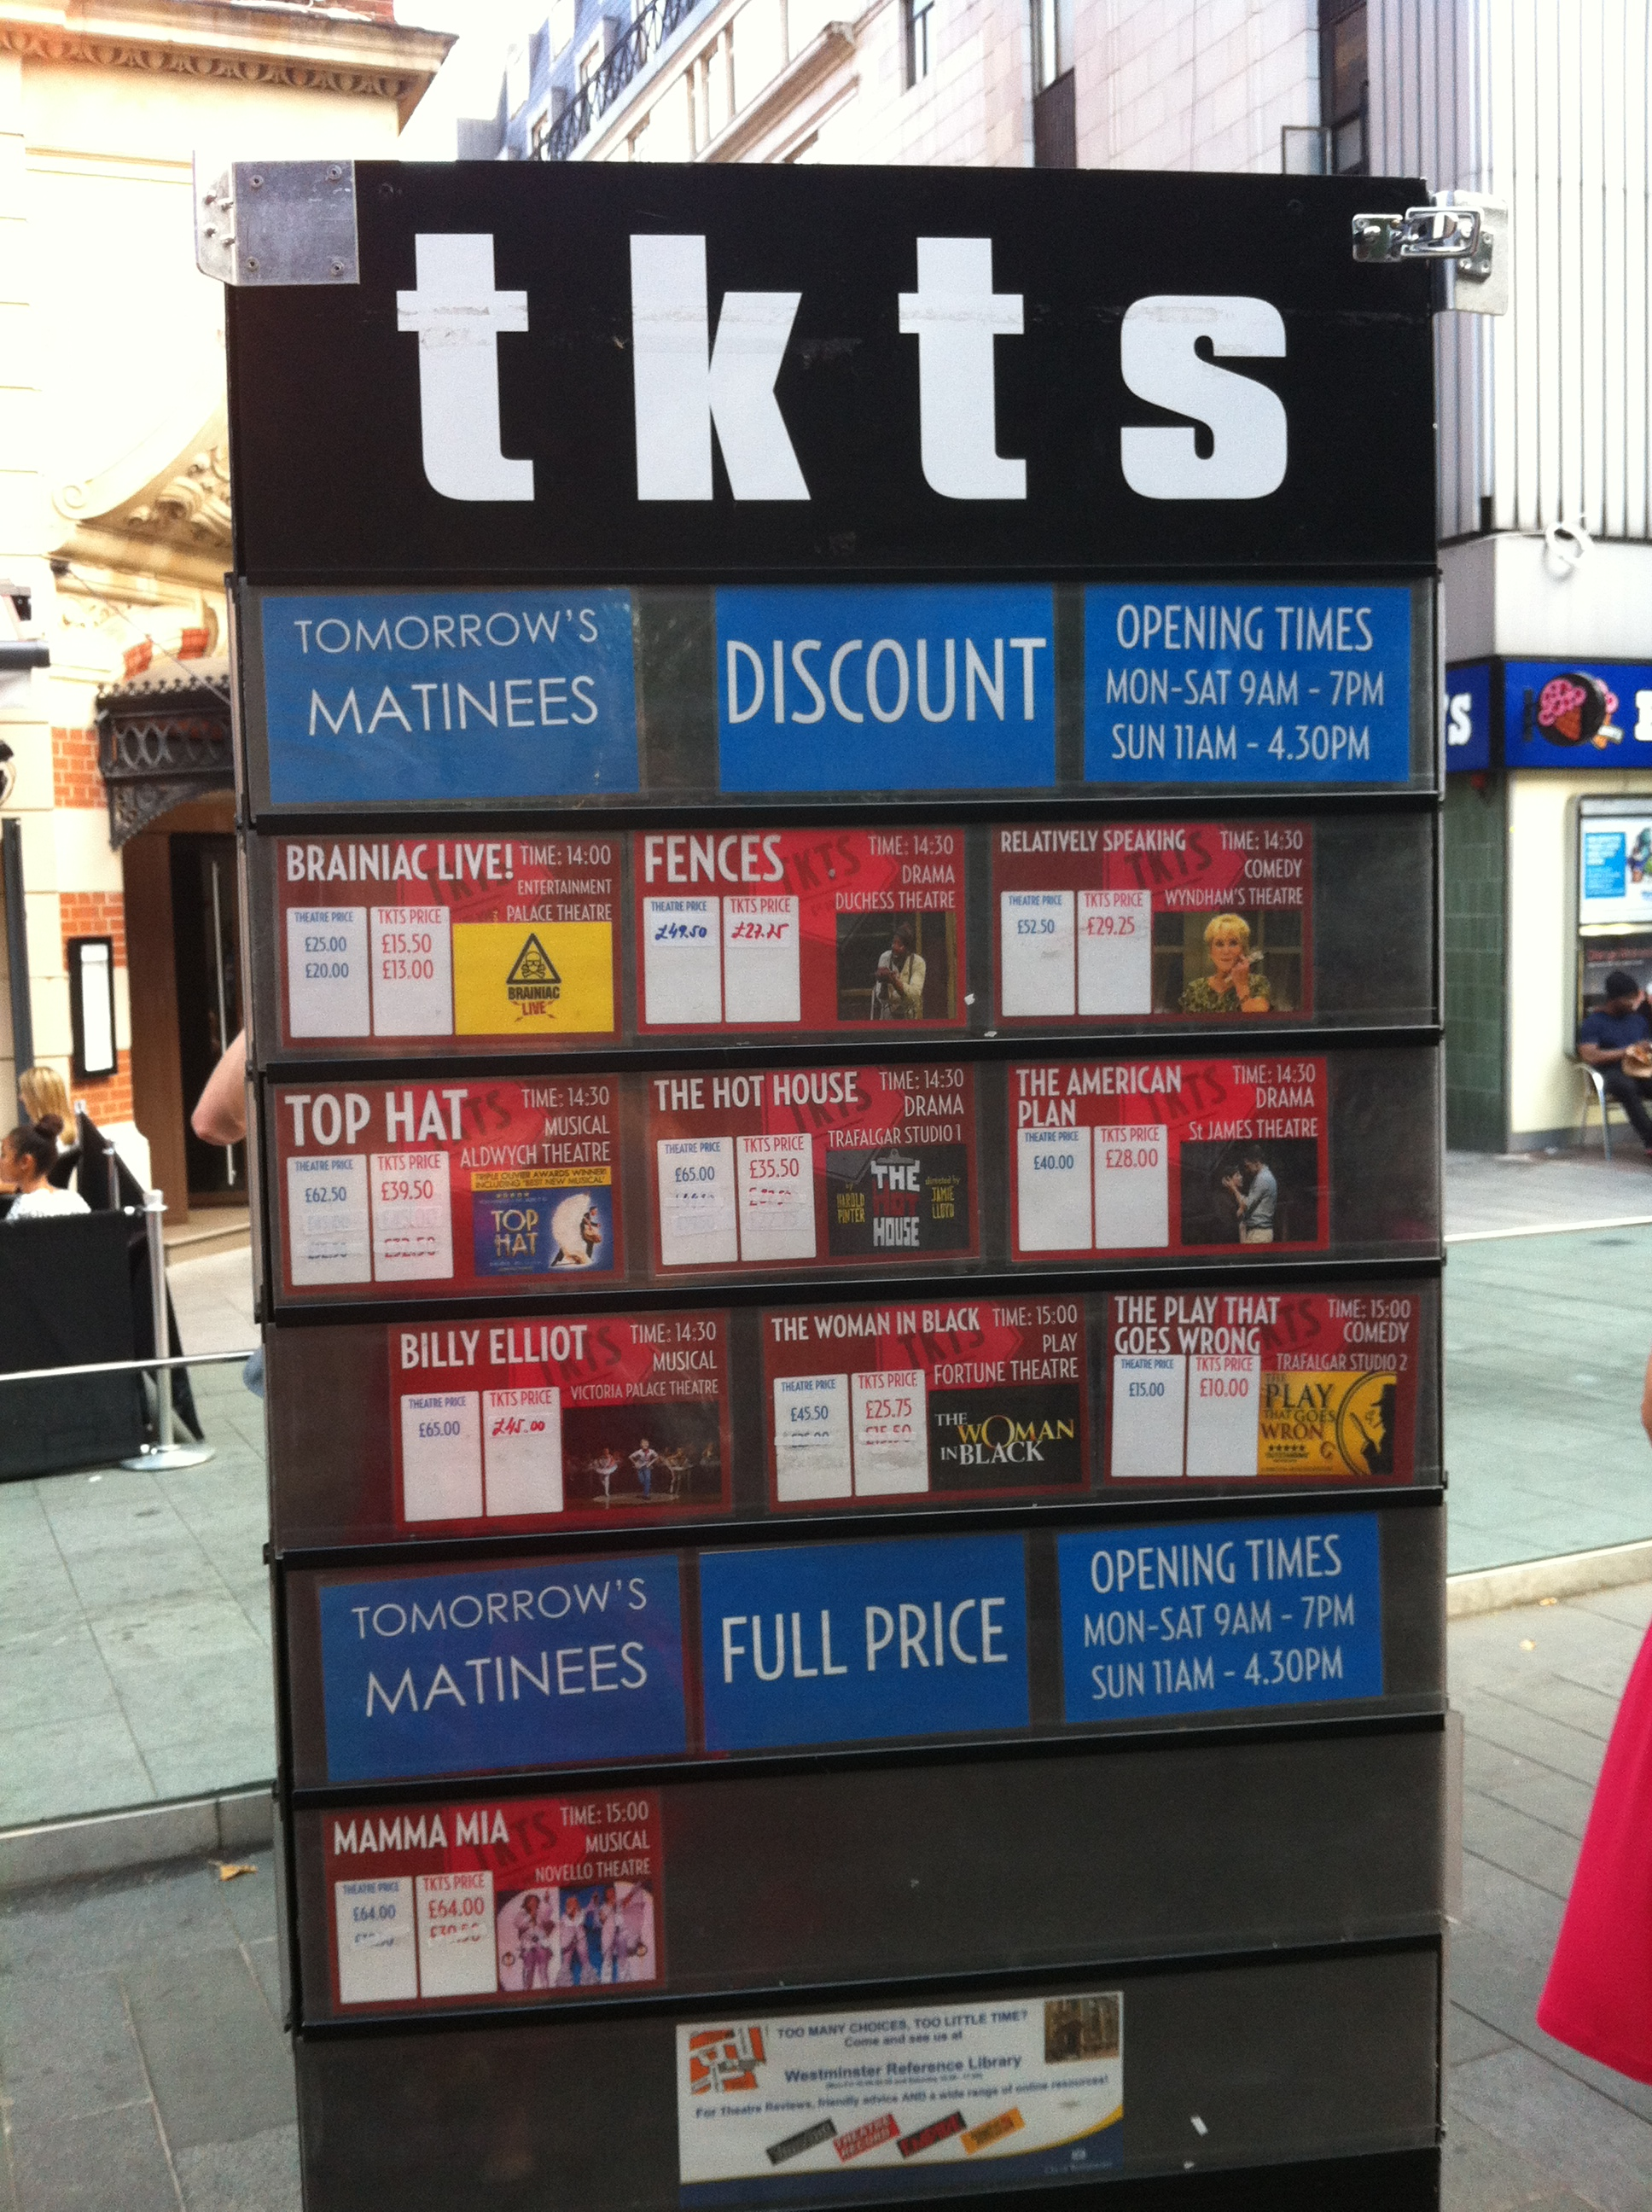 TKTS Leicester Square